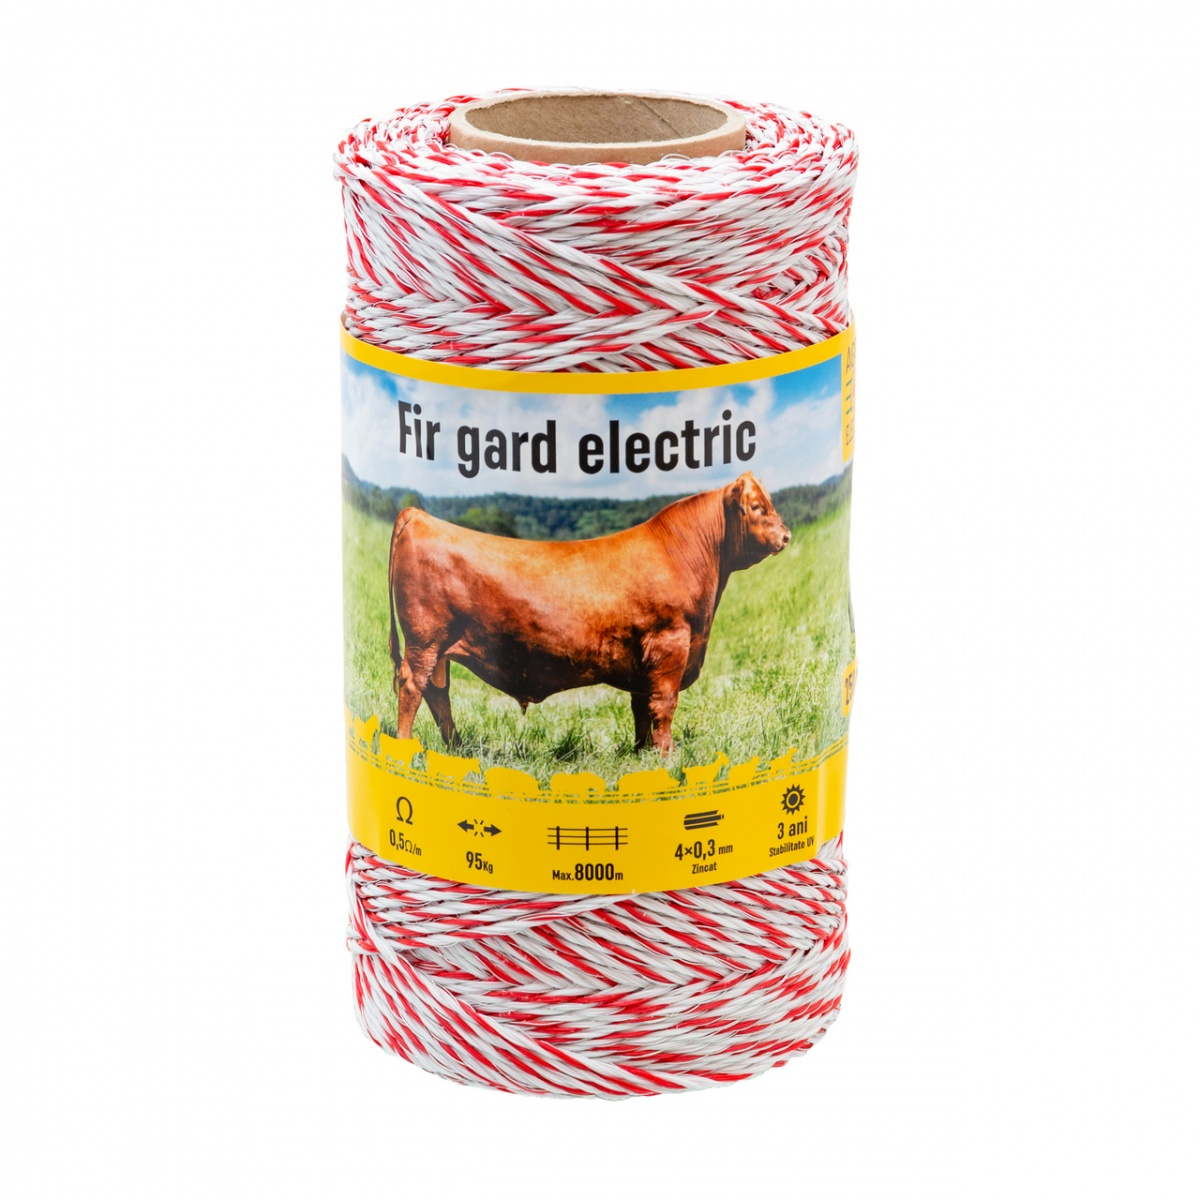 Fir gard electric - 250 m - 95 kg - 0,5 Ω/m